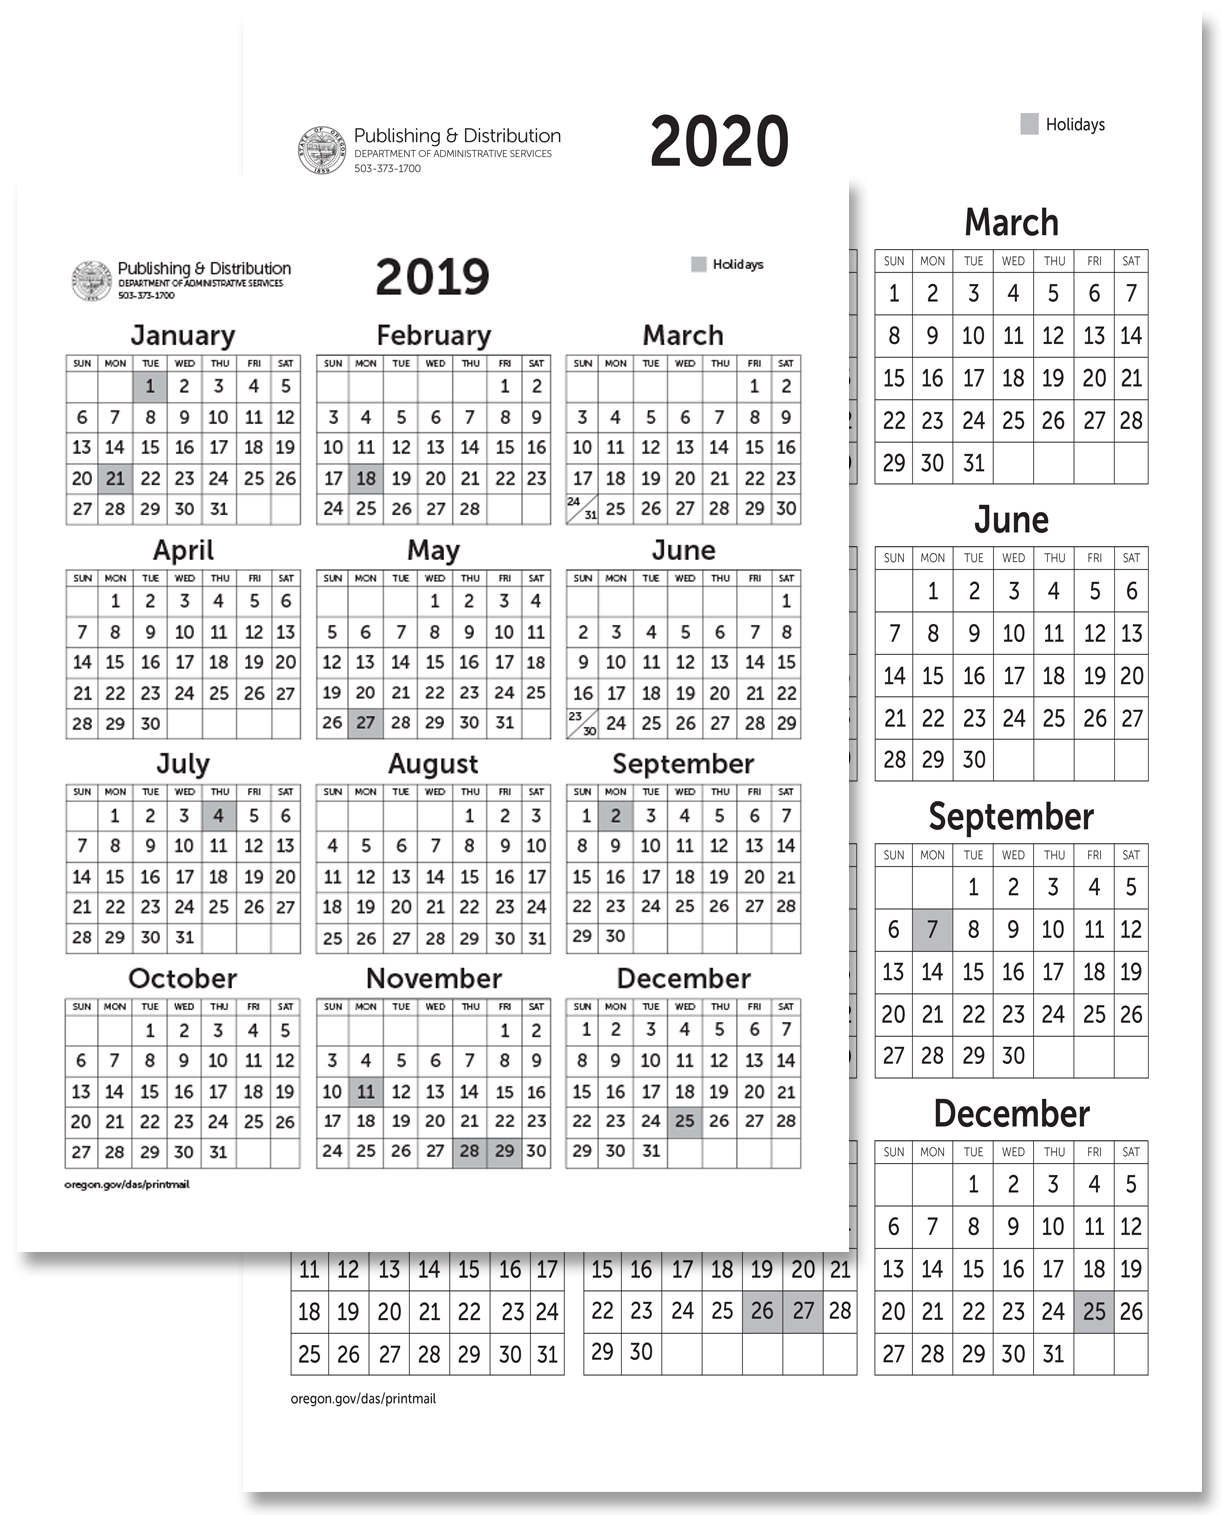 State Of Oregon: Printing, Mailing And Distribution Services - Calendars intended for 2020 Calendar 8.5 X 11